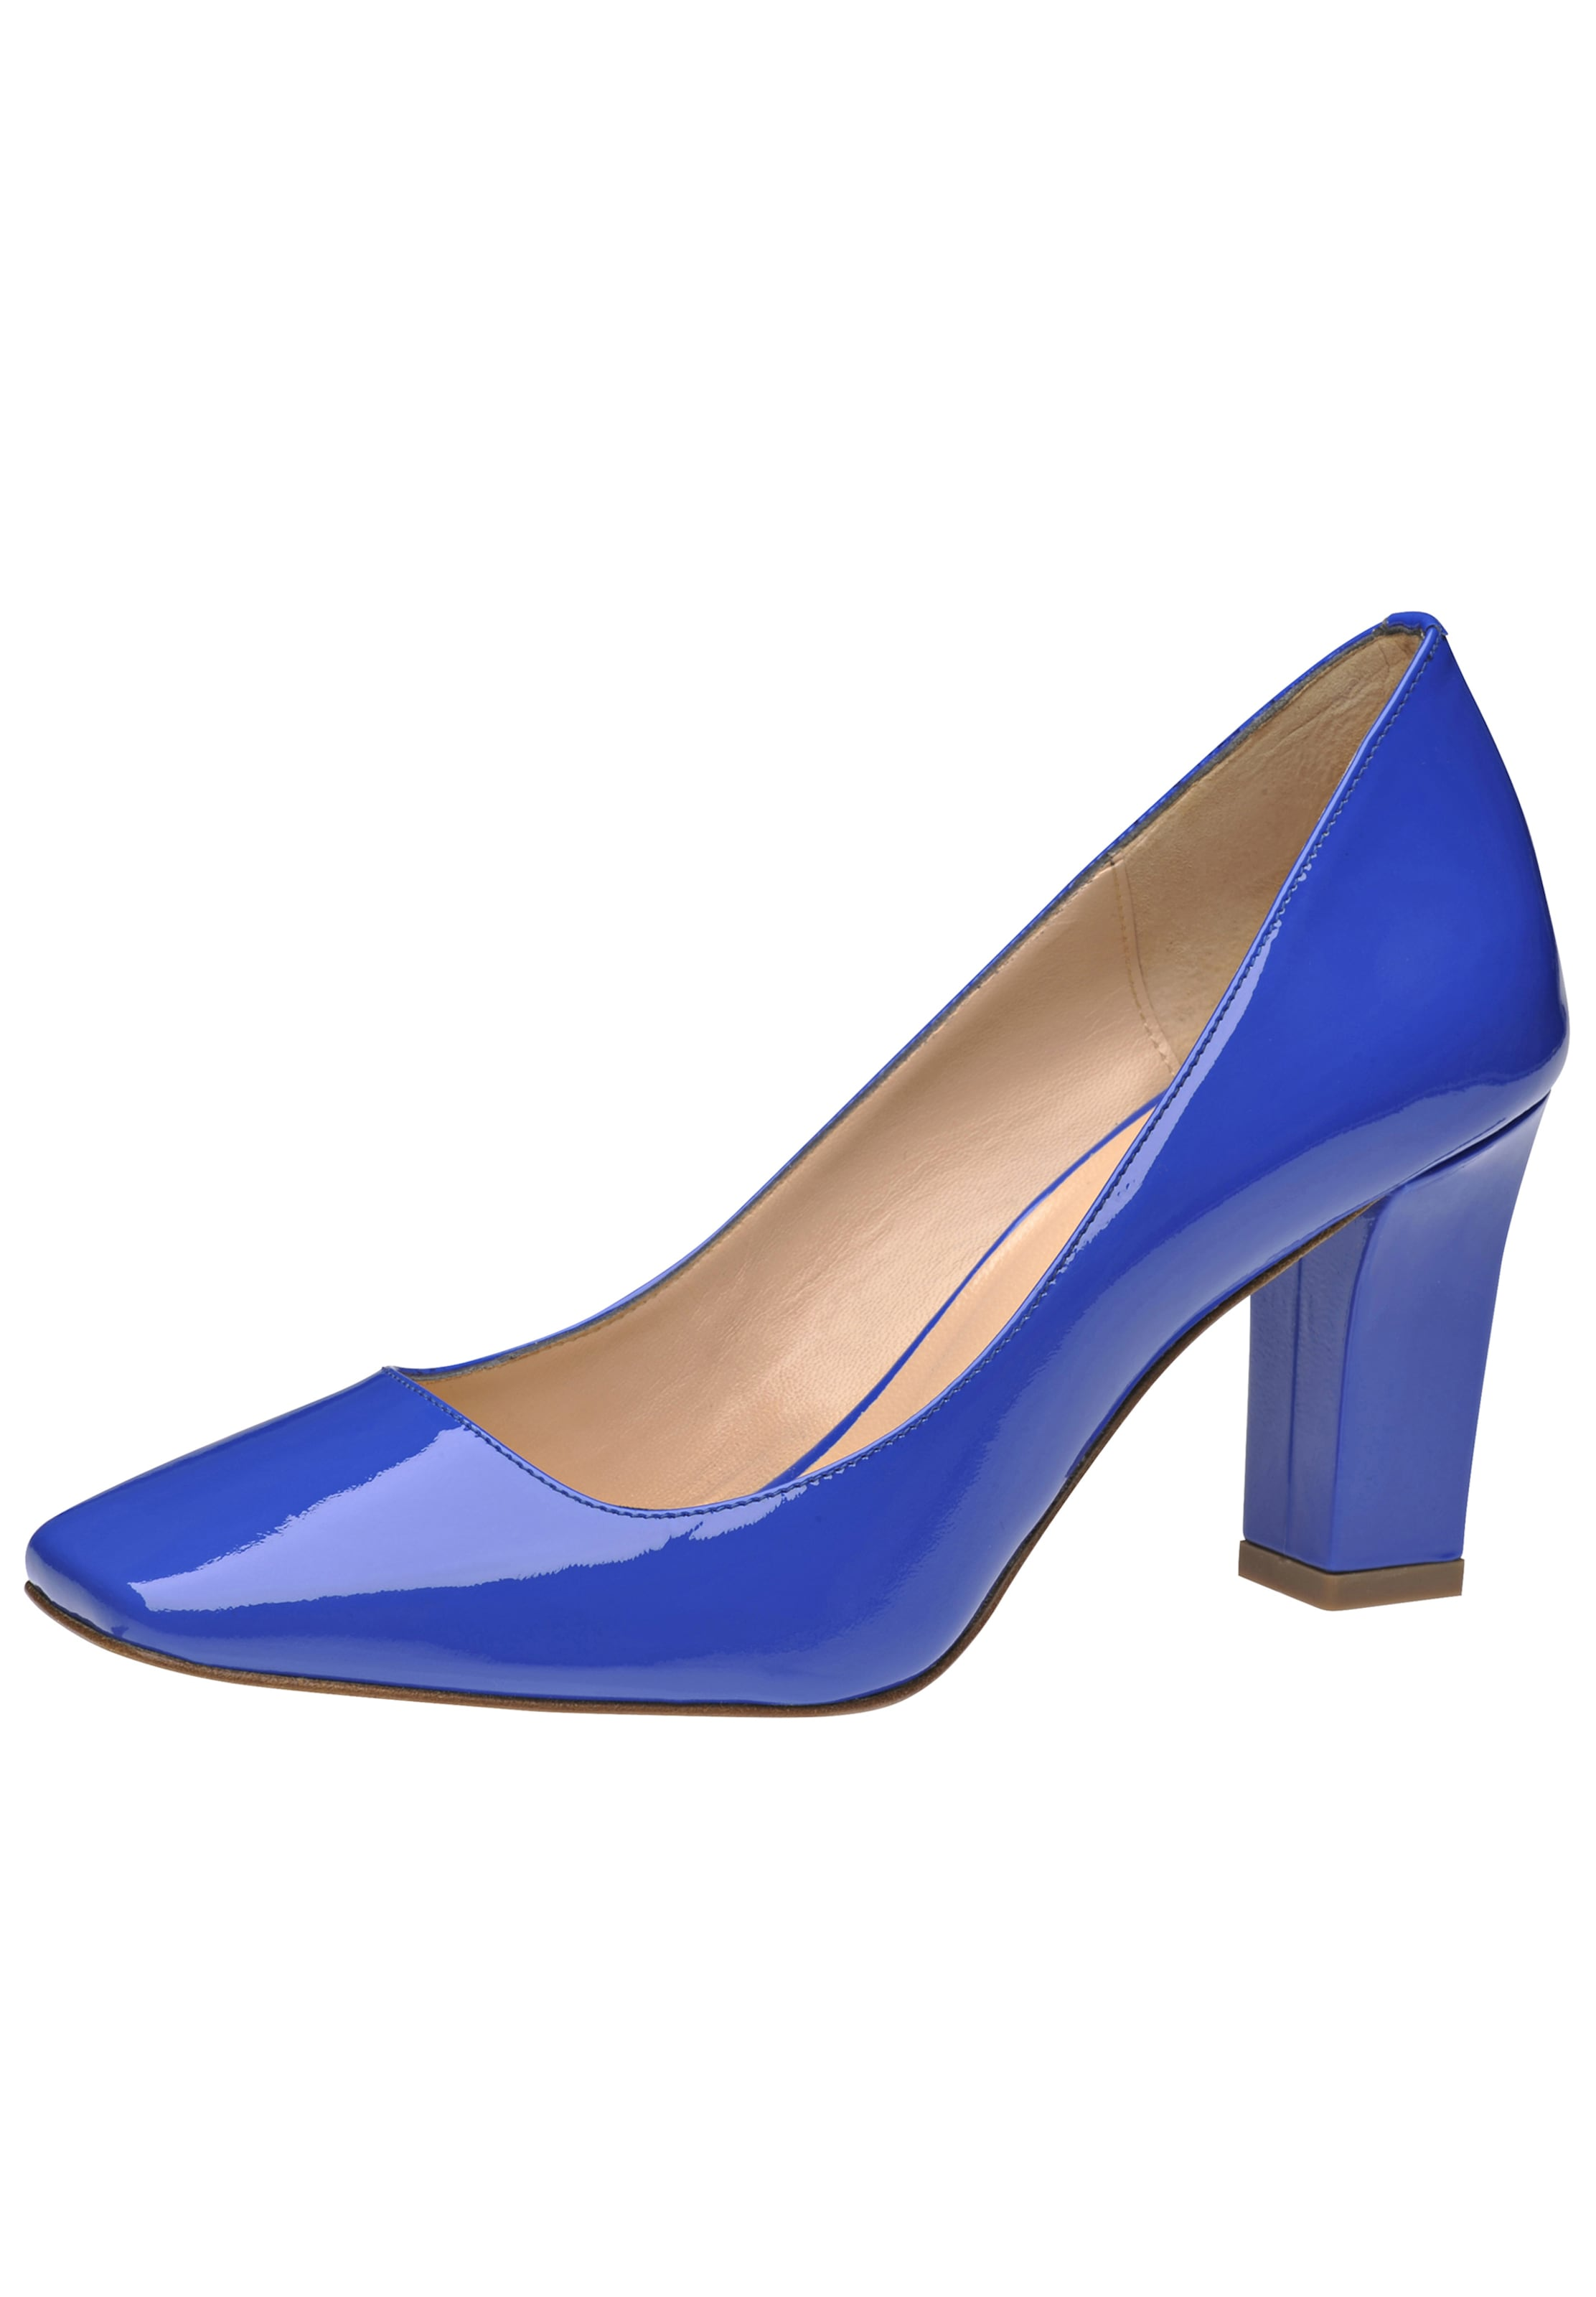 Pumps Evita Damen Damen Royalblau Evita Pumps In l1KJTcF